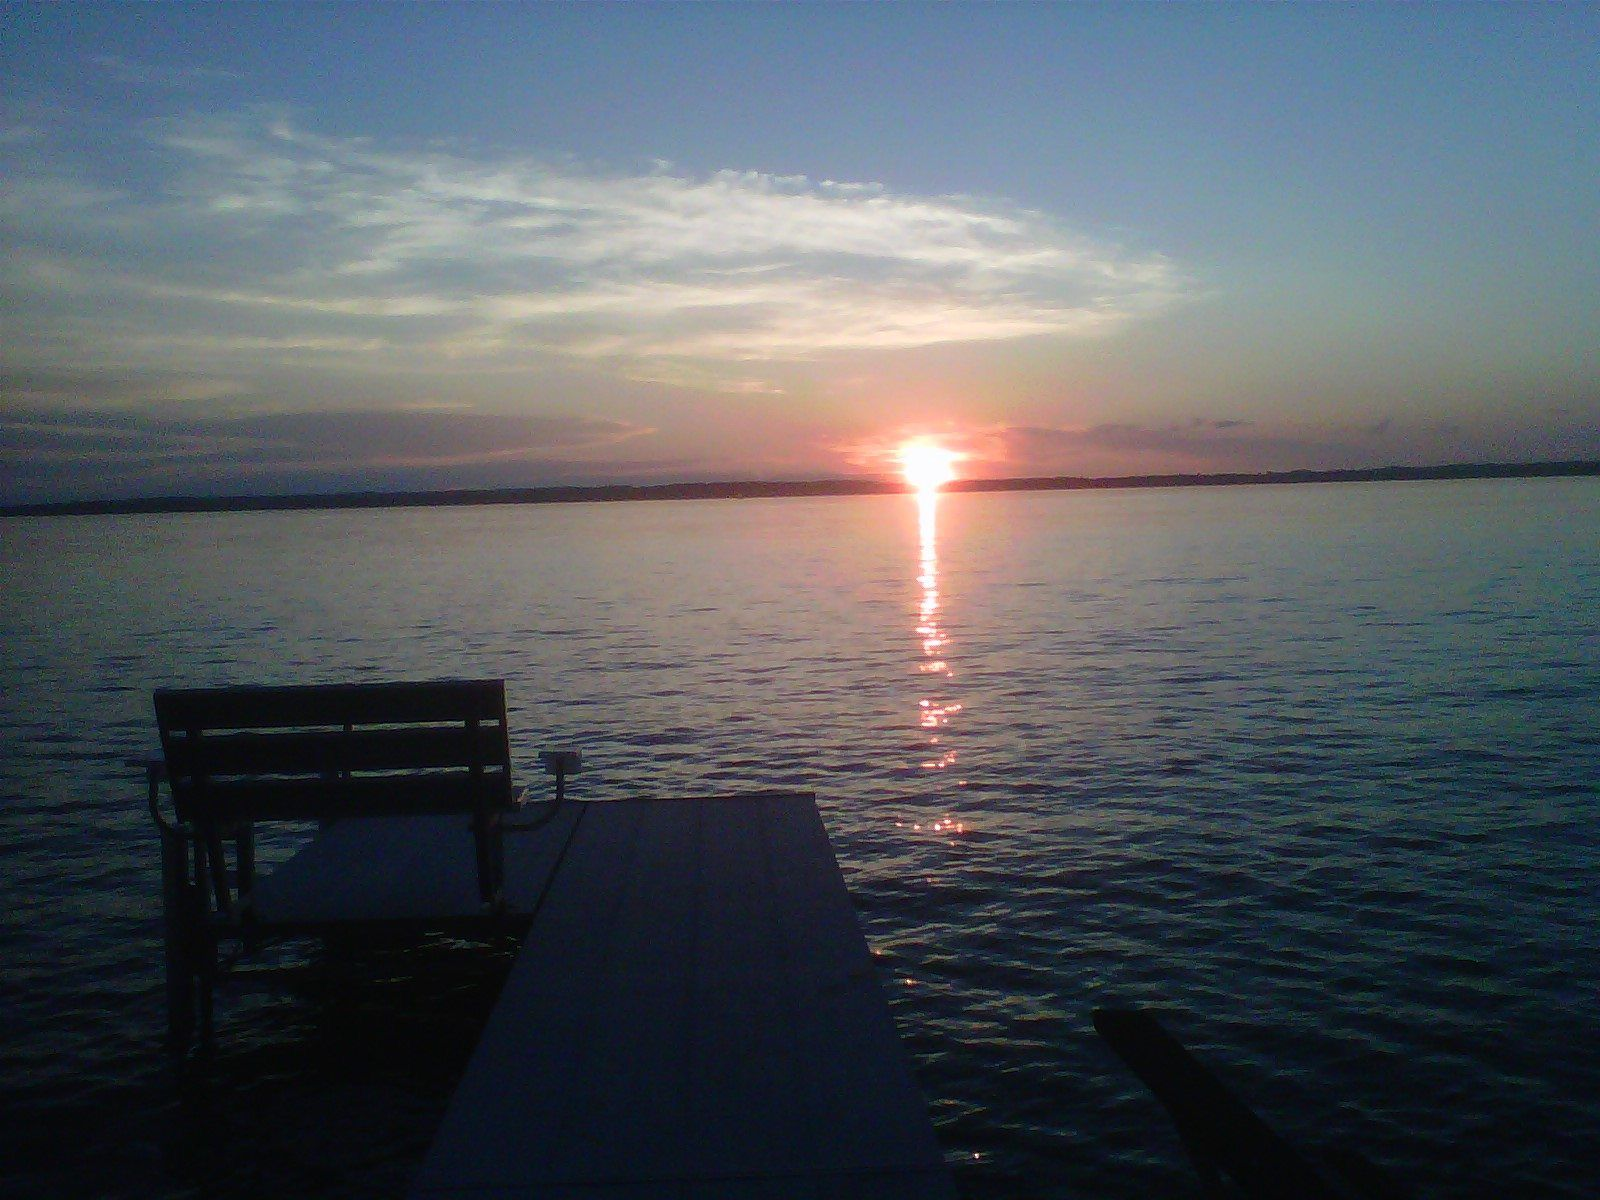 Looking over the water makes me pause and feel the awe of nature's beauty. It makes me feel like I'm part of a bigger picture, and it relaxes me and changes my perspective for the better. It never fails to improve my mood!  Submitted by Carolyn S.